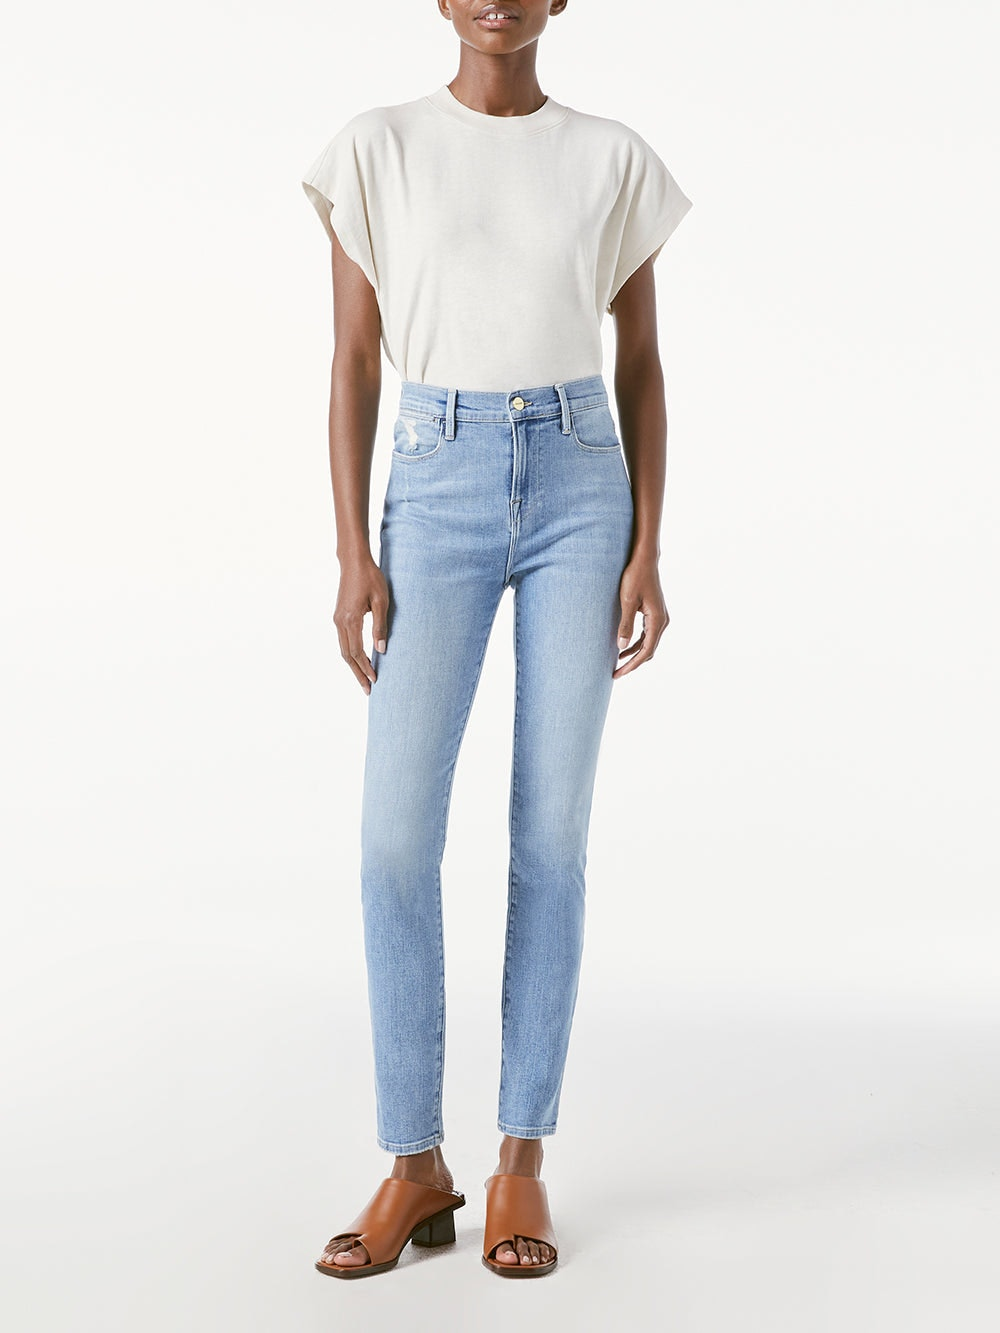 jeans front full body view alt:hover